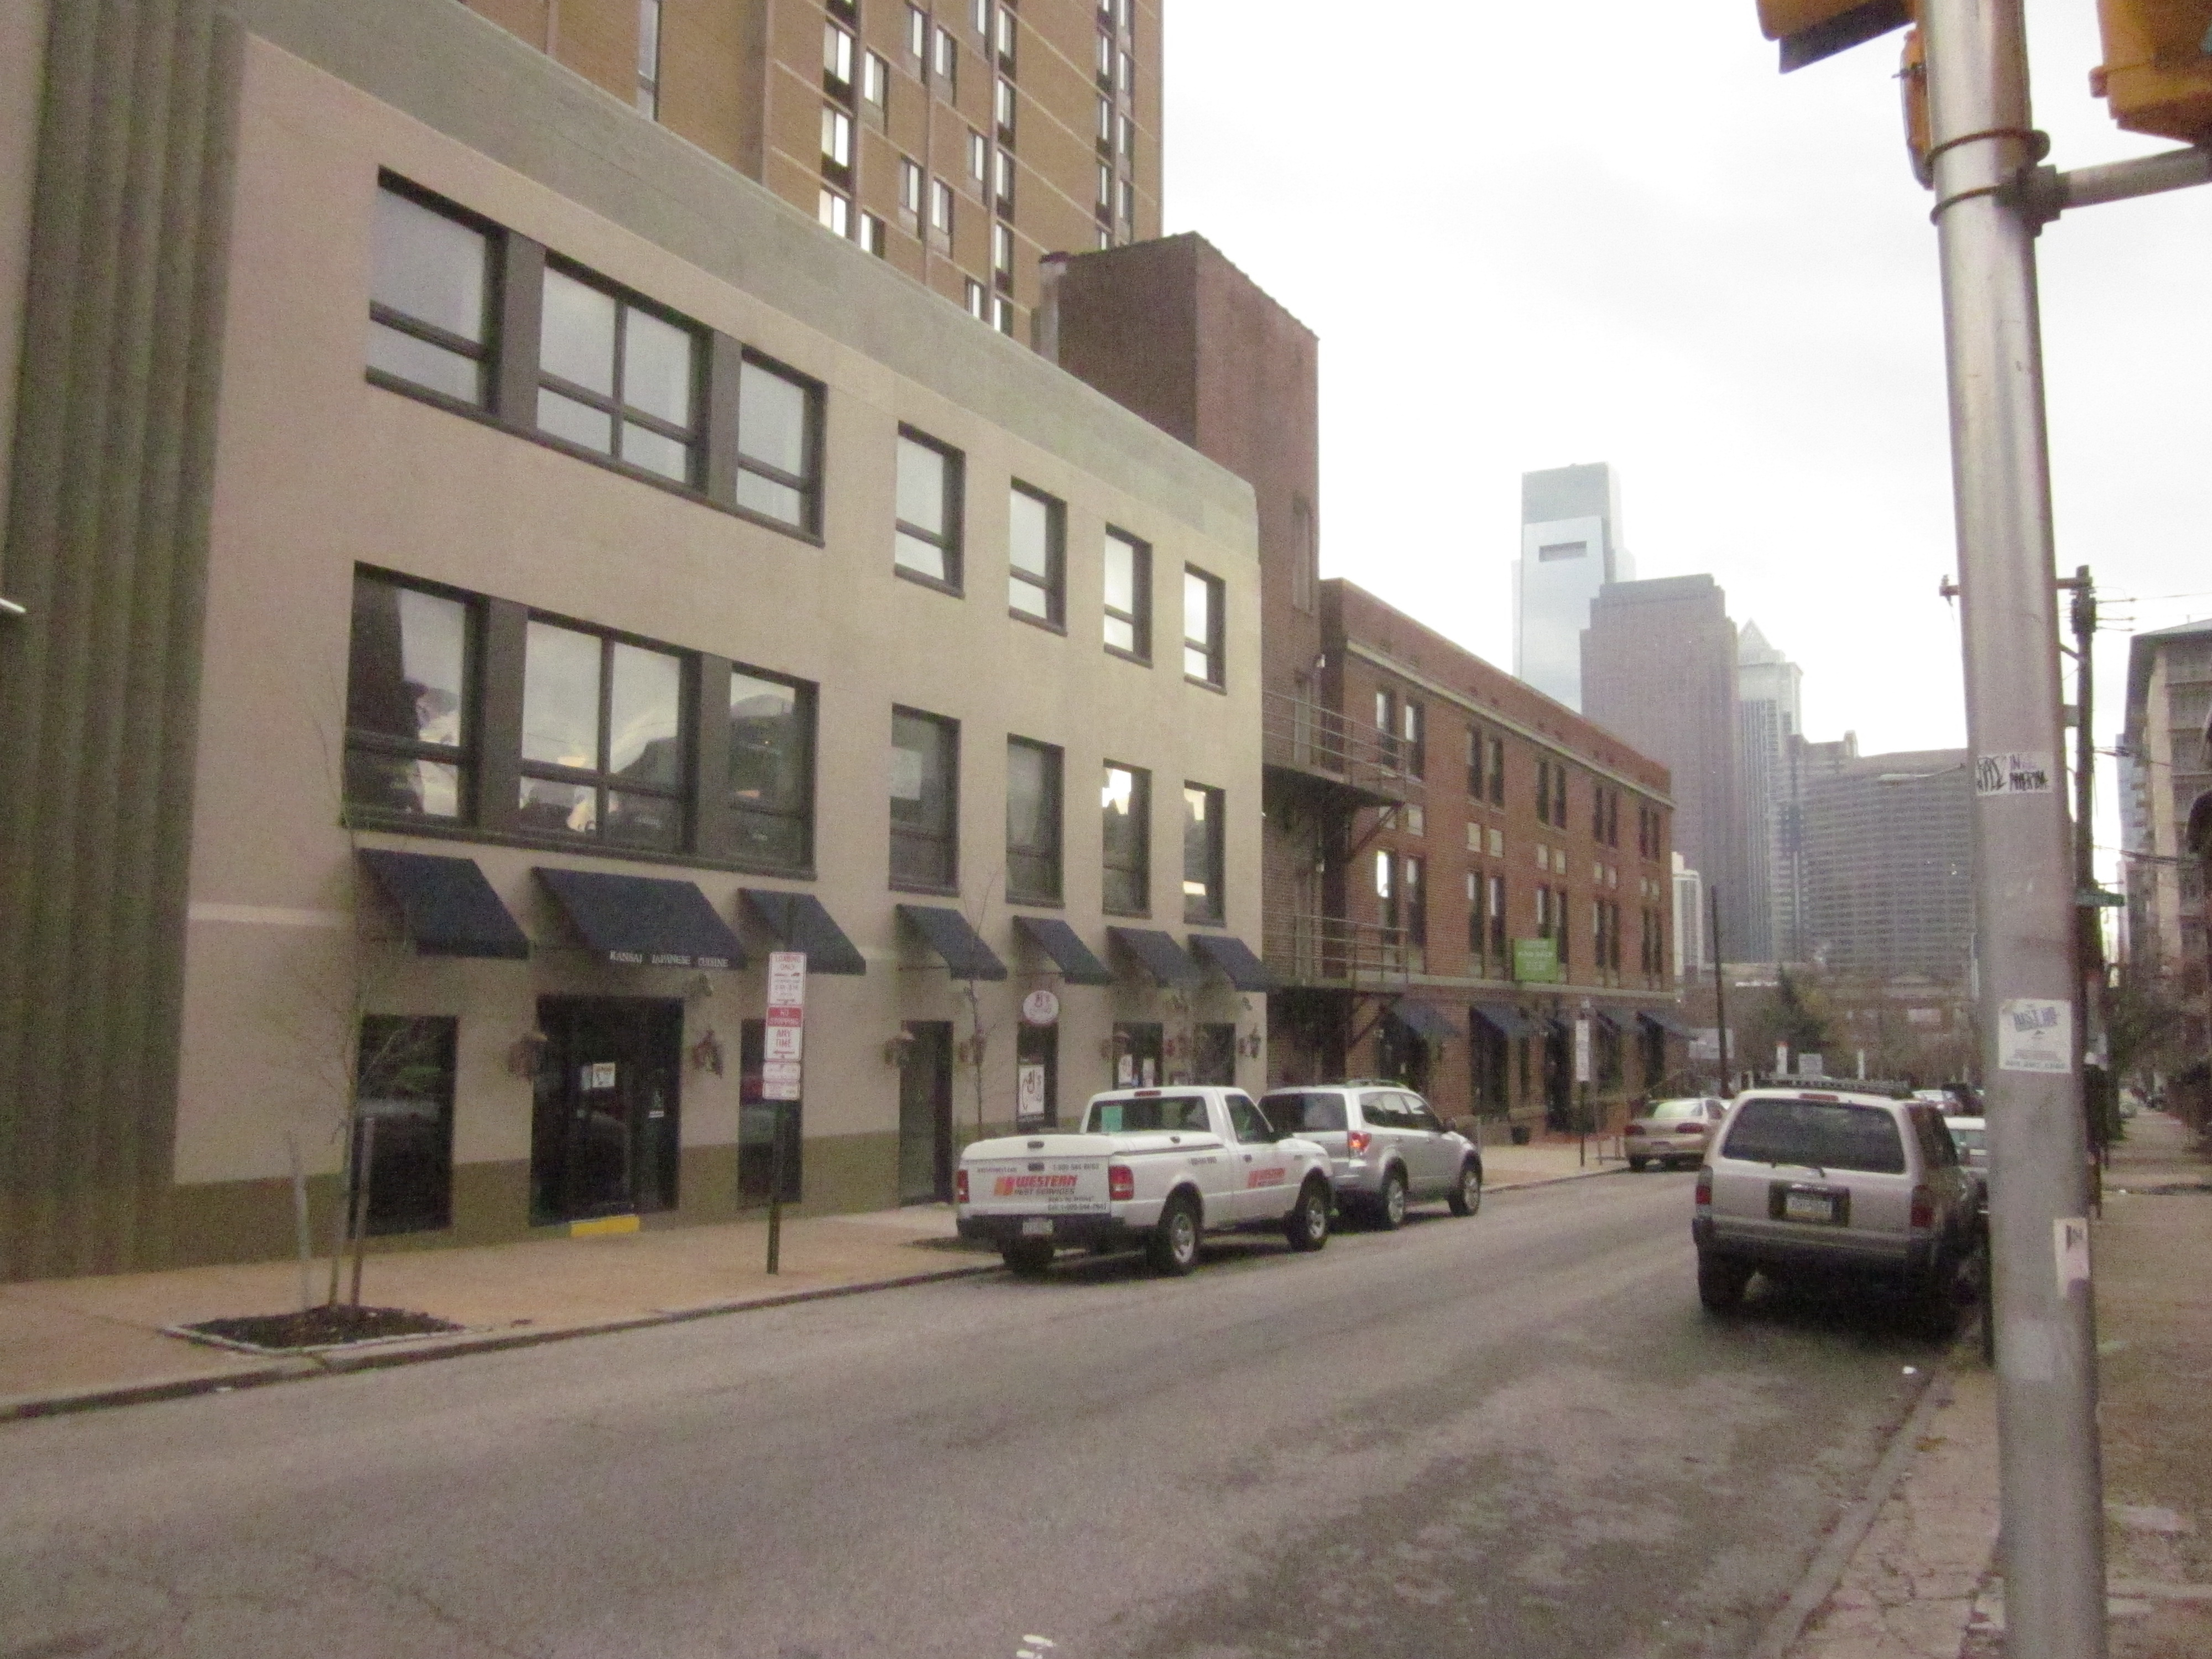 Museum Towers Ii Is Another Big Apartment Development In Fairmount Franklintown But Also Has